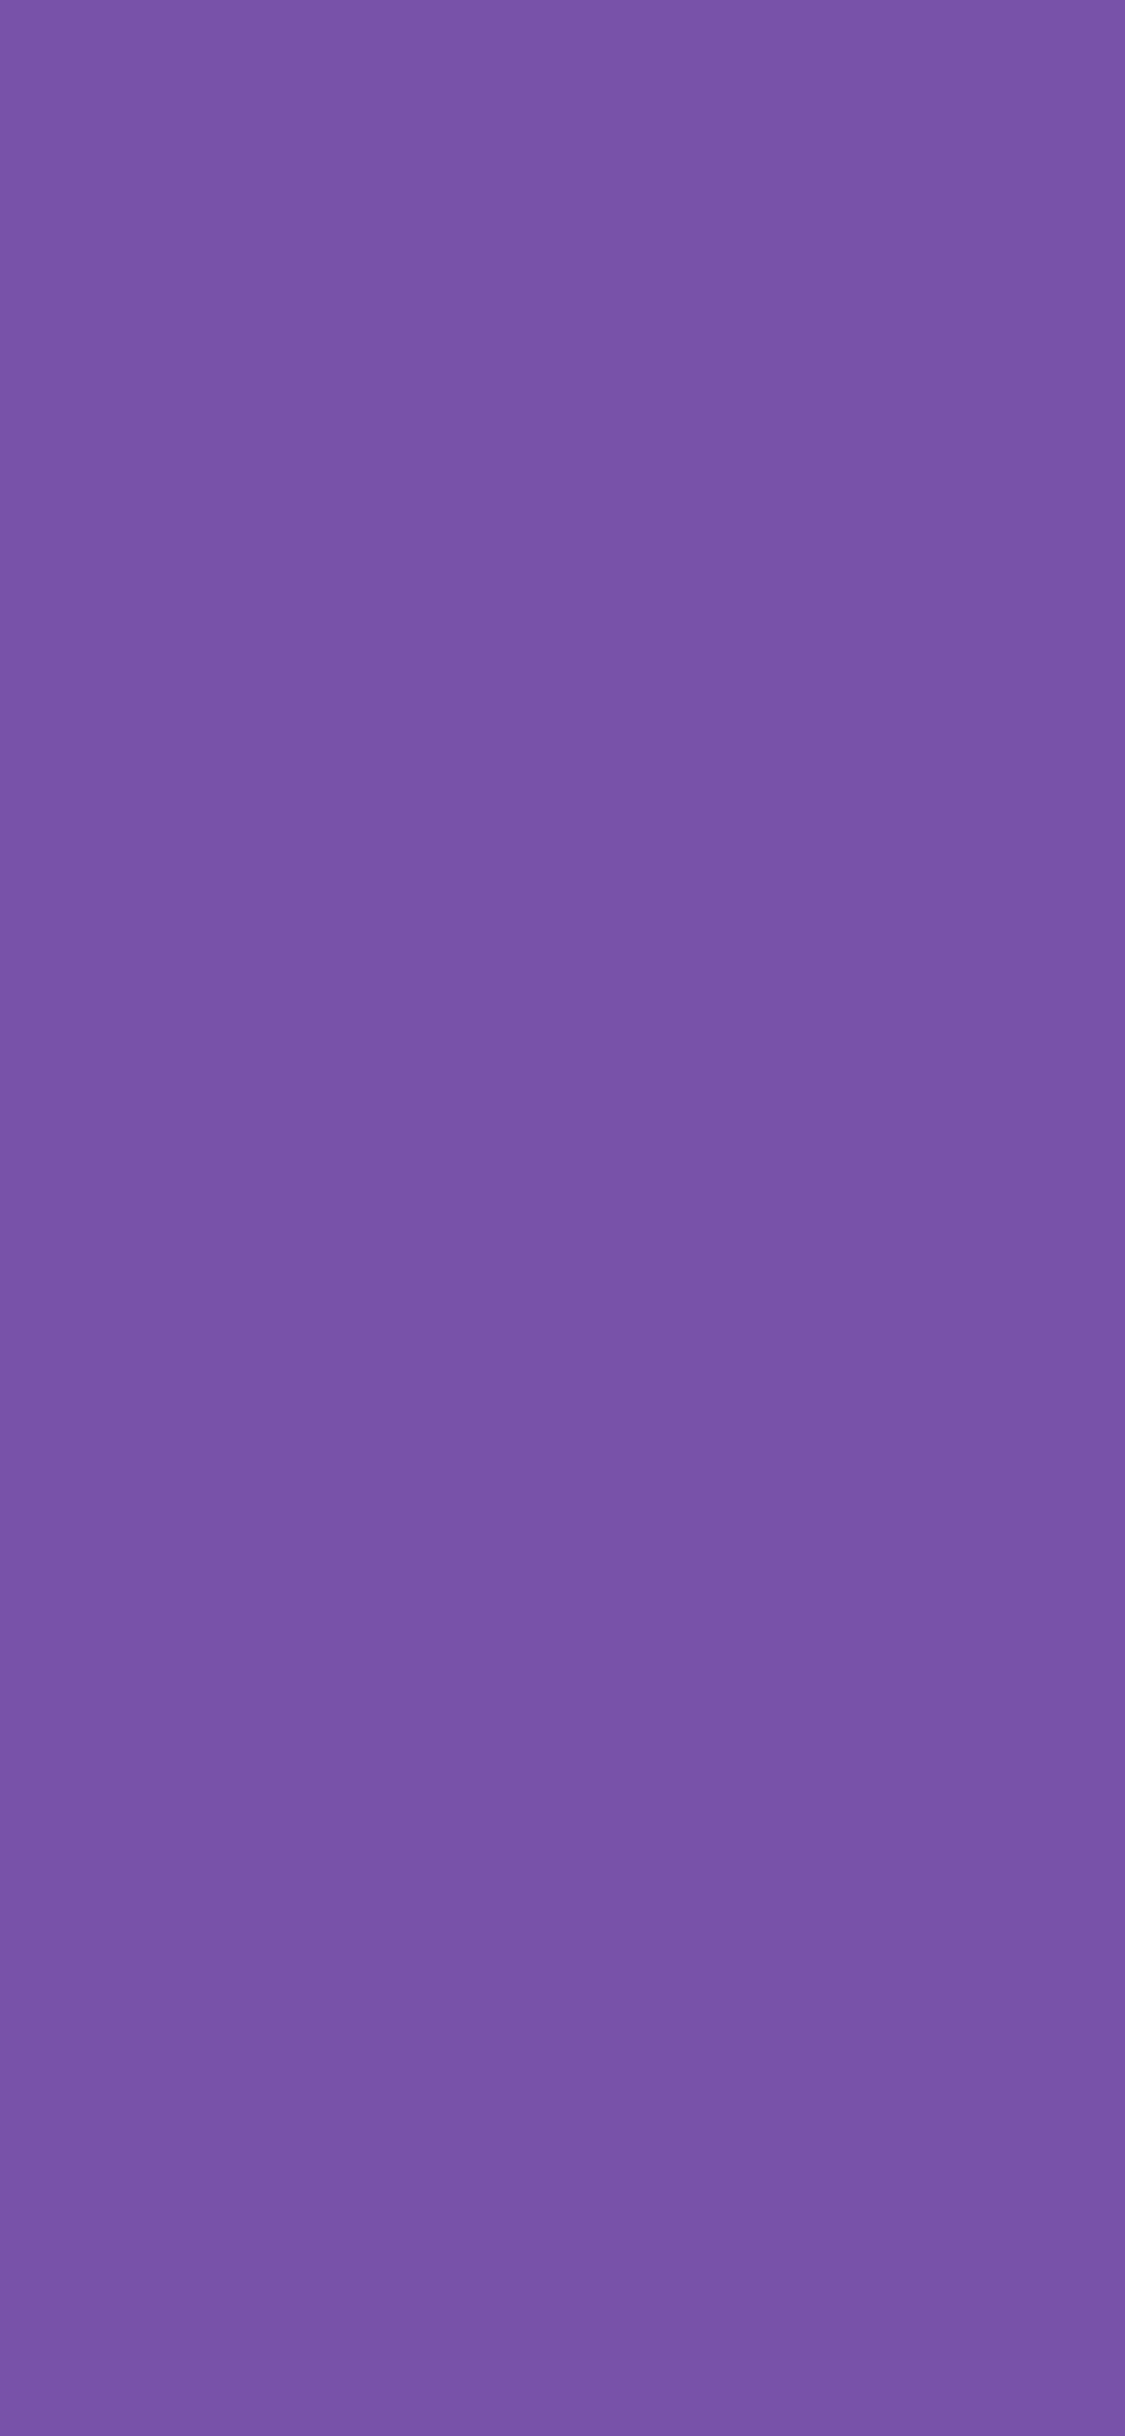 1125x2436 Royal Purple Solid Color Background